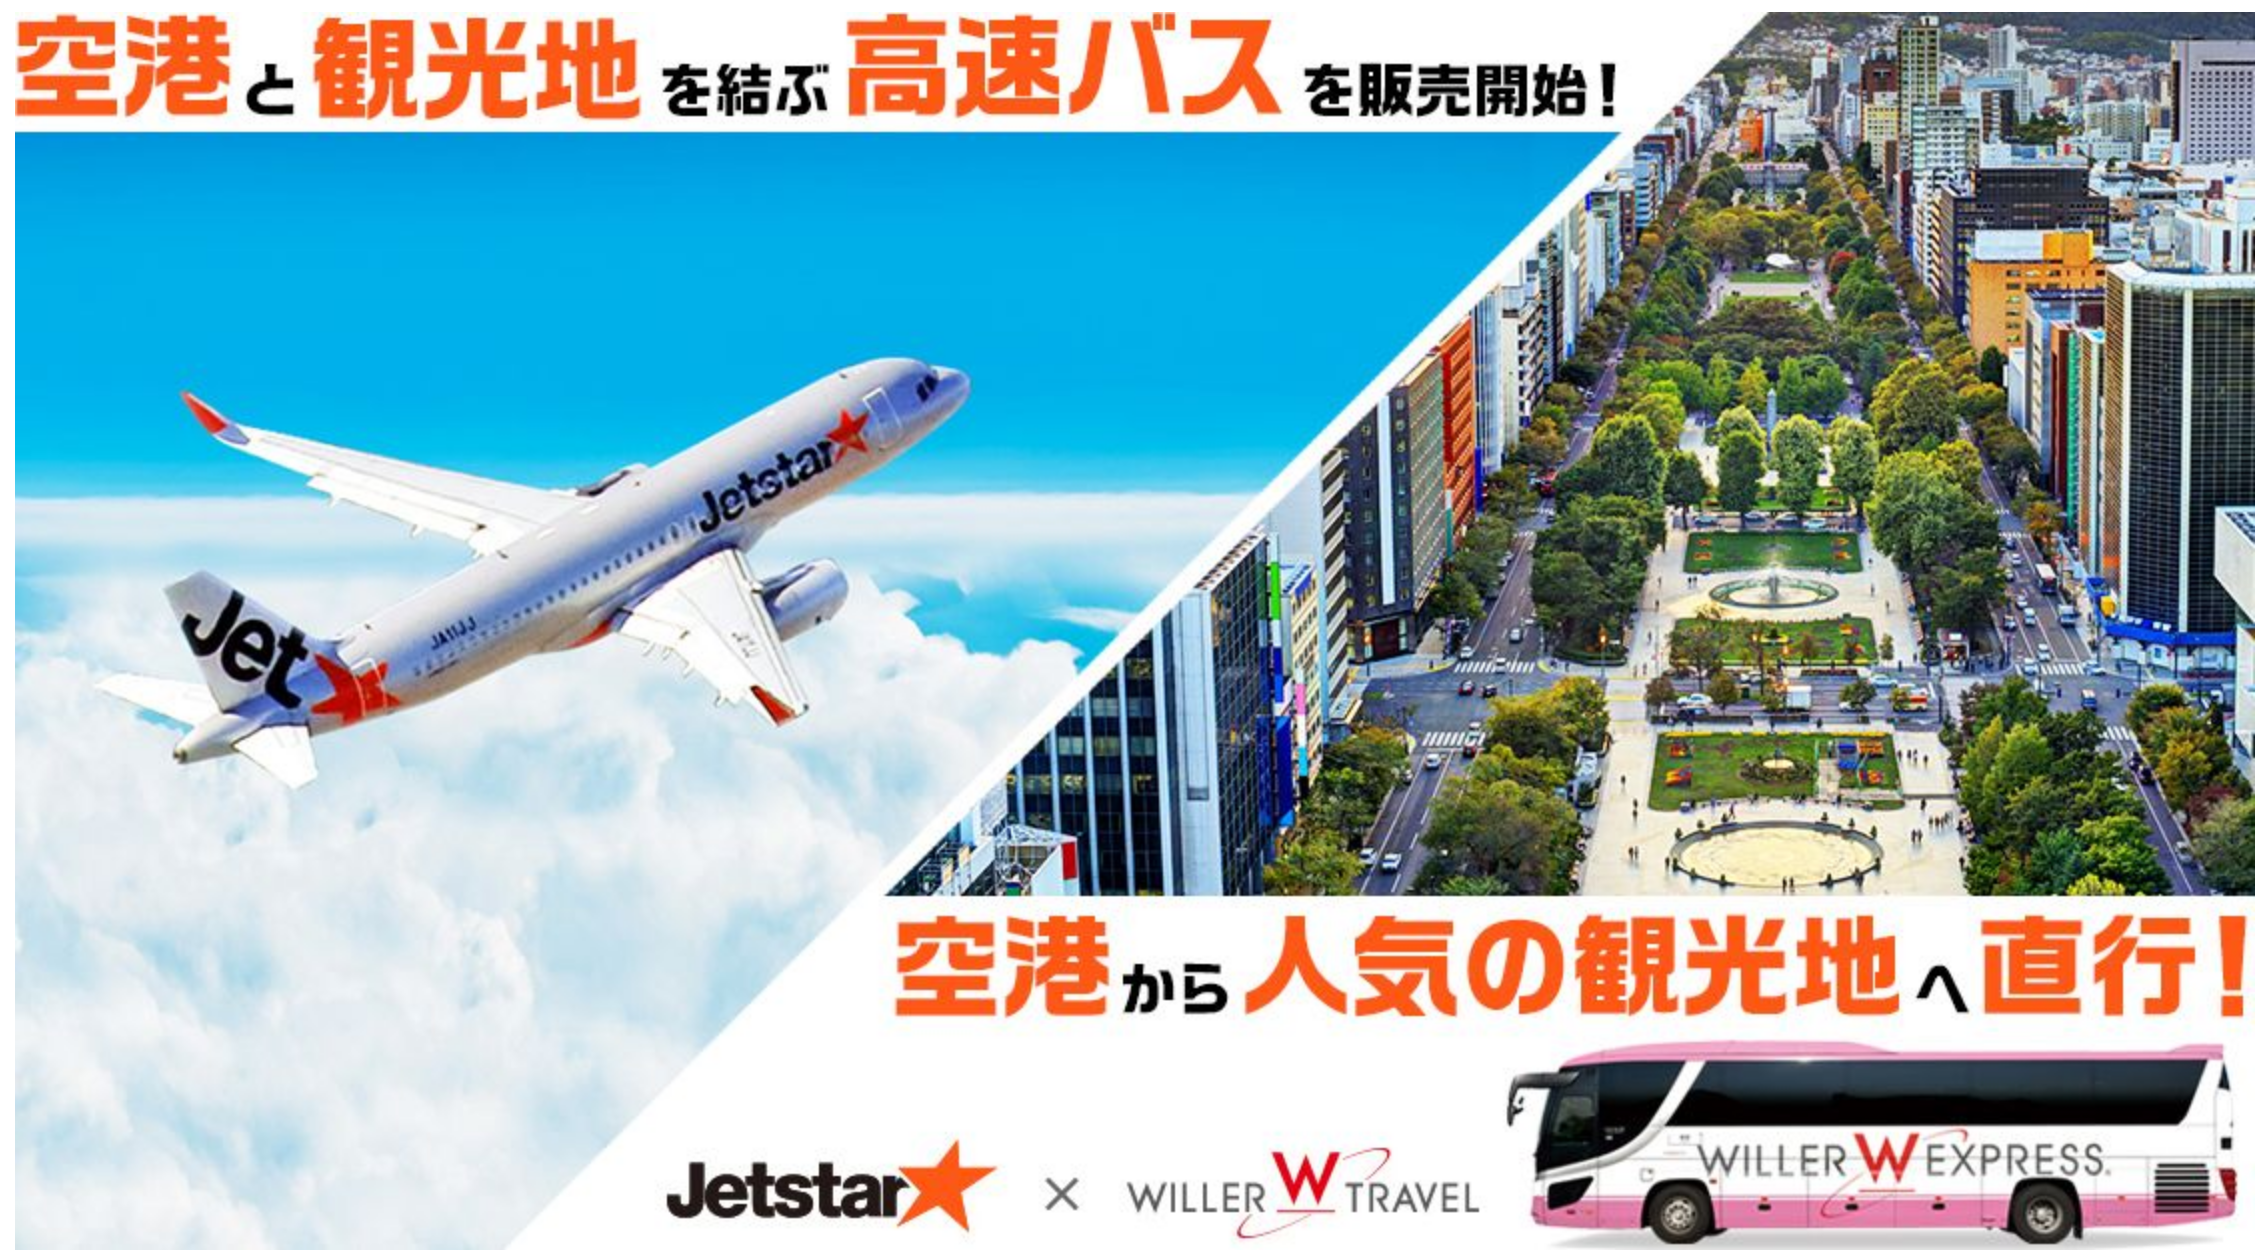 willerjetstarcoupon.png